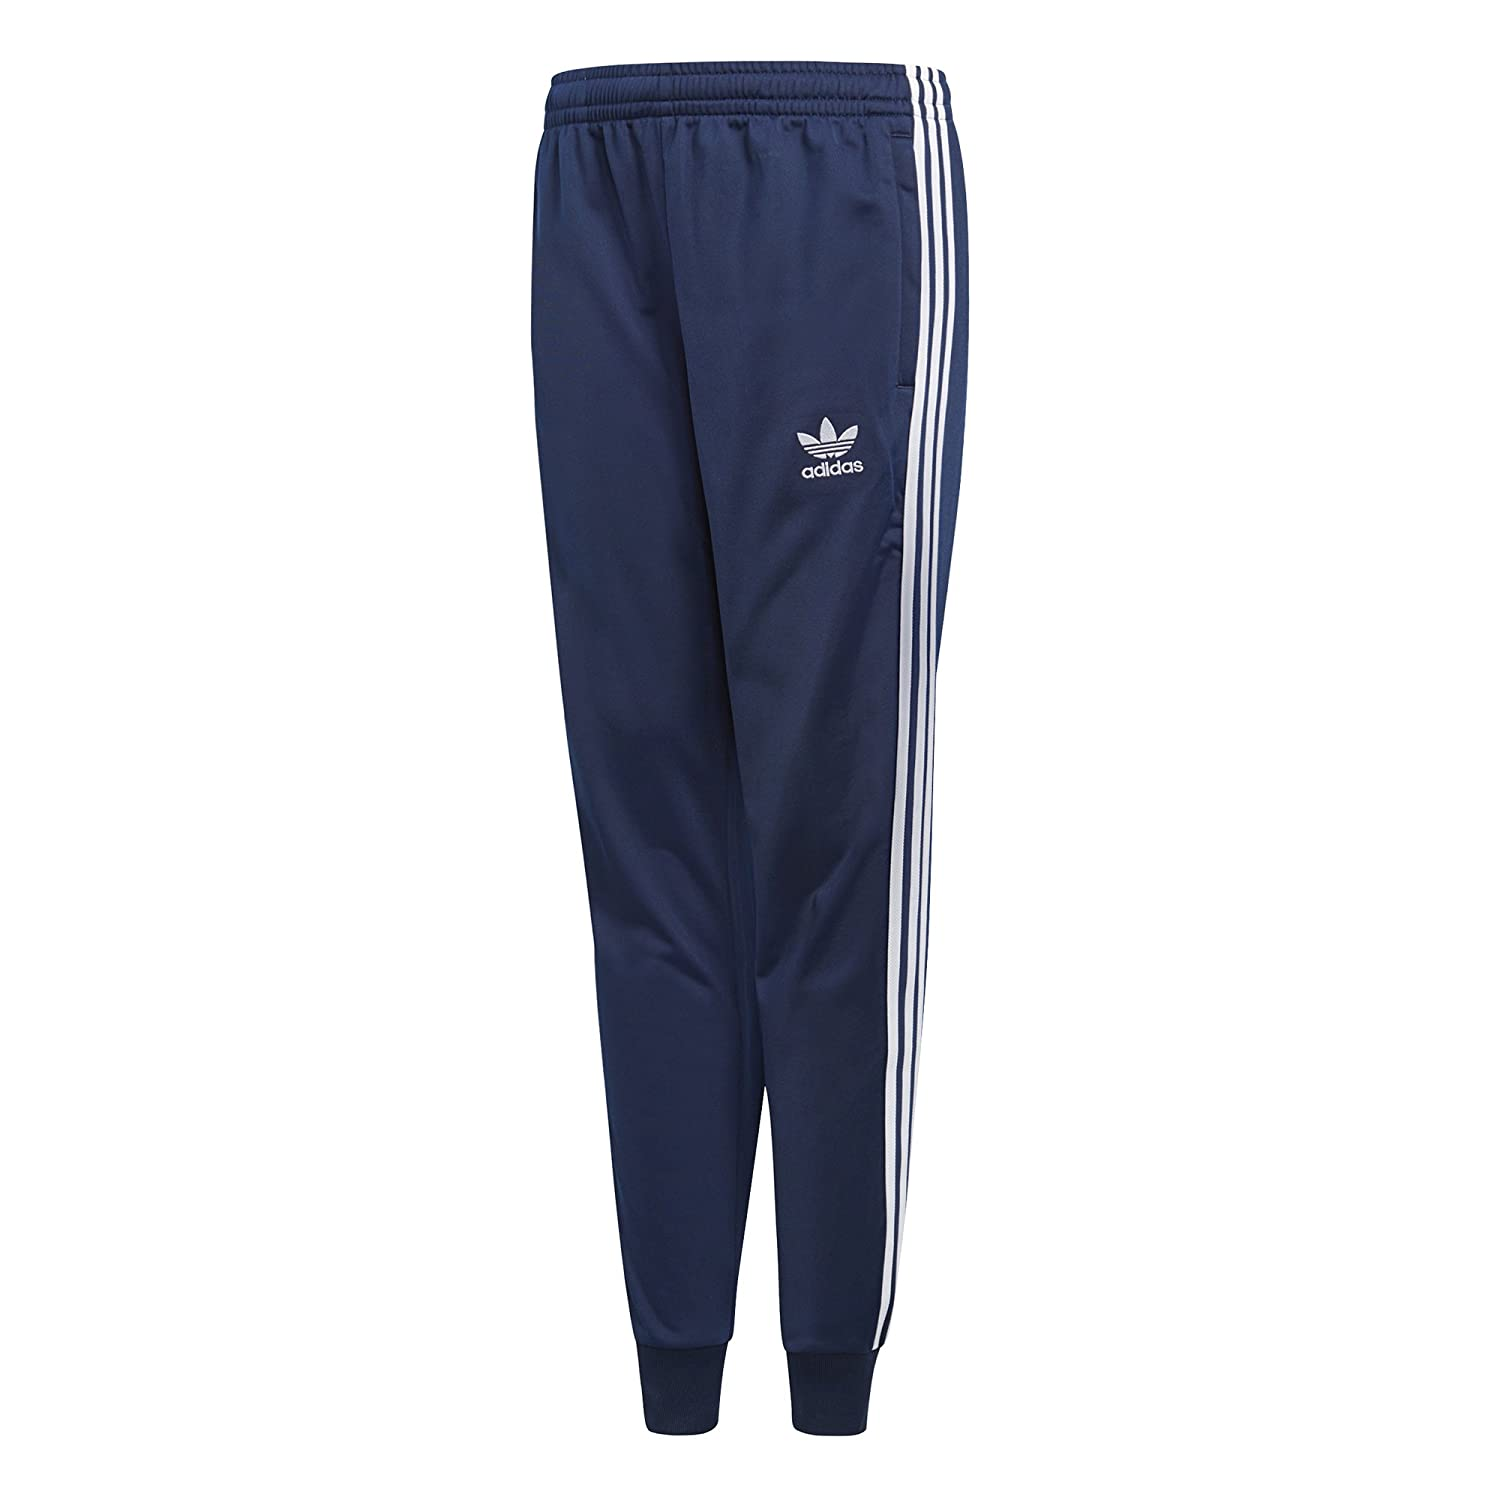 effd1d789f5b Amazon.com  adidas Originals Kids Boy s Superstar Pants (Little Kids Big  Kids) Collegiate Navy X-Large  Clothing